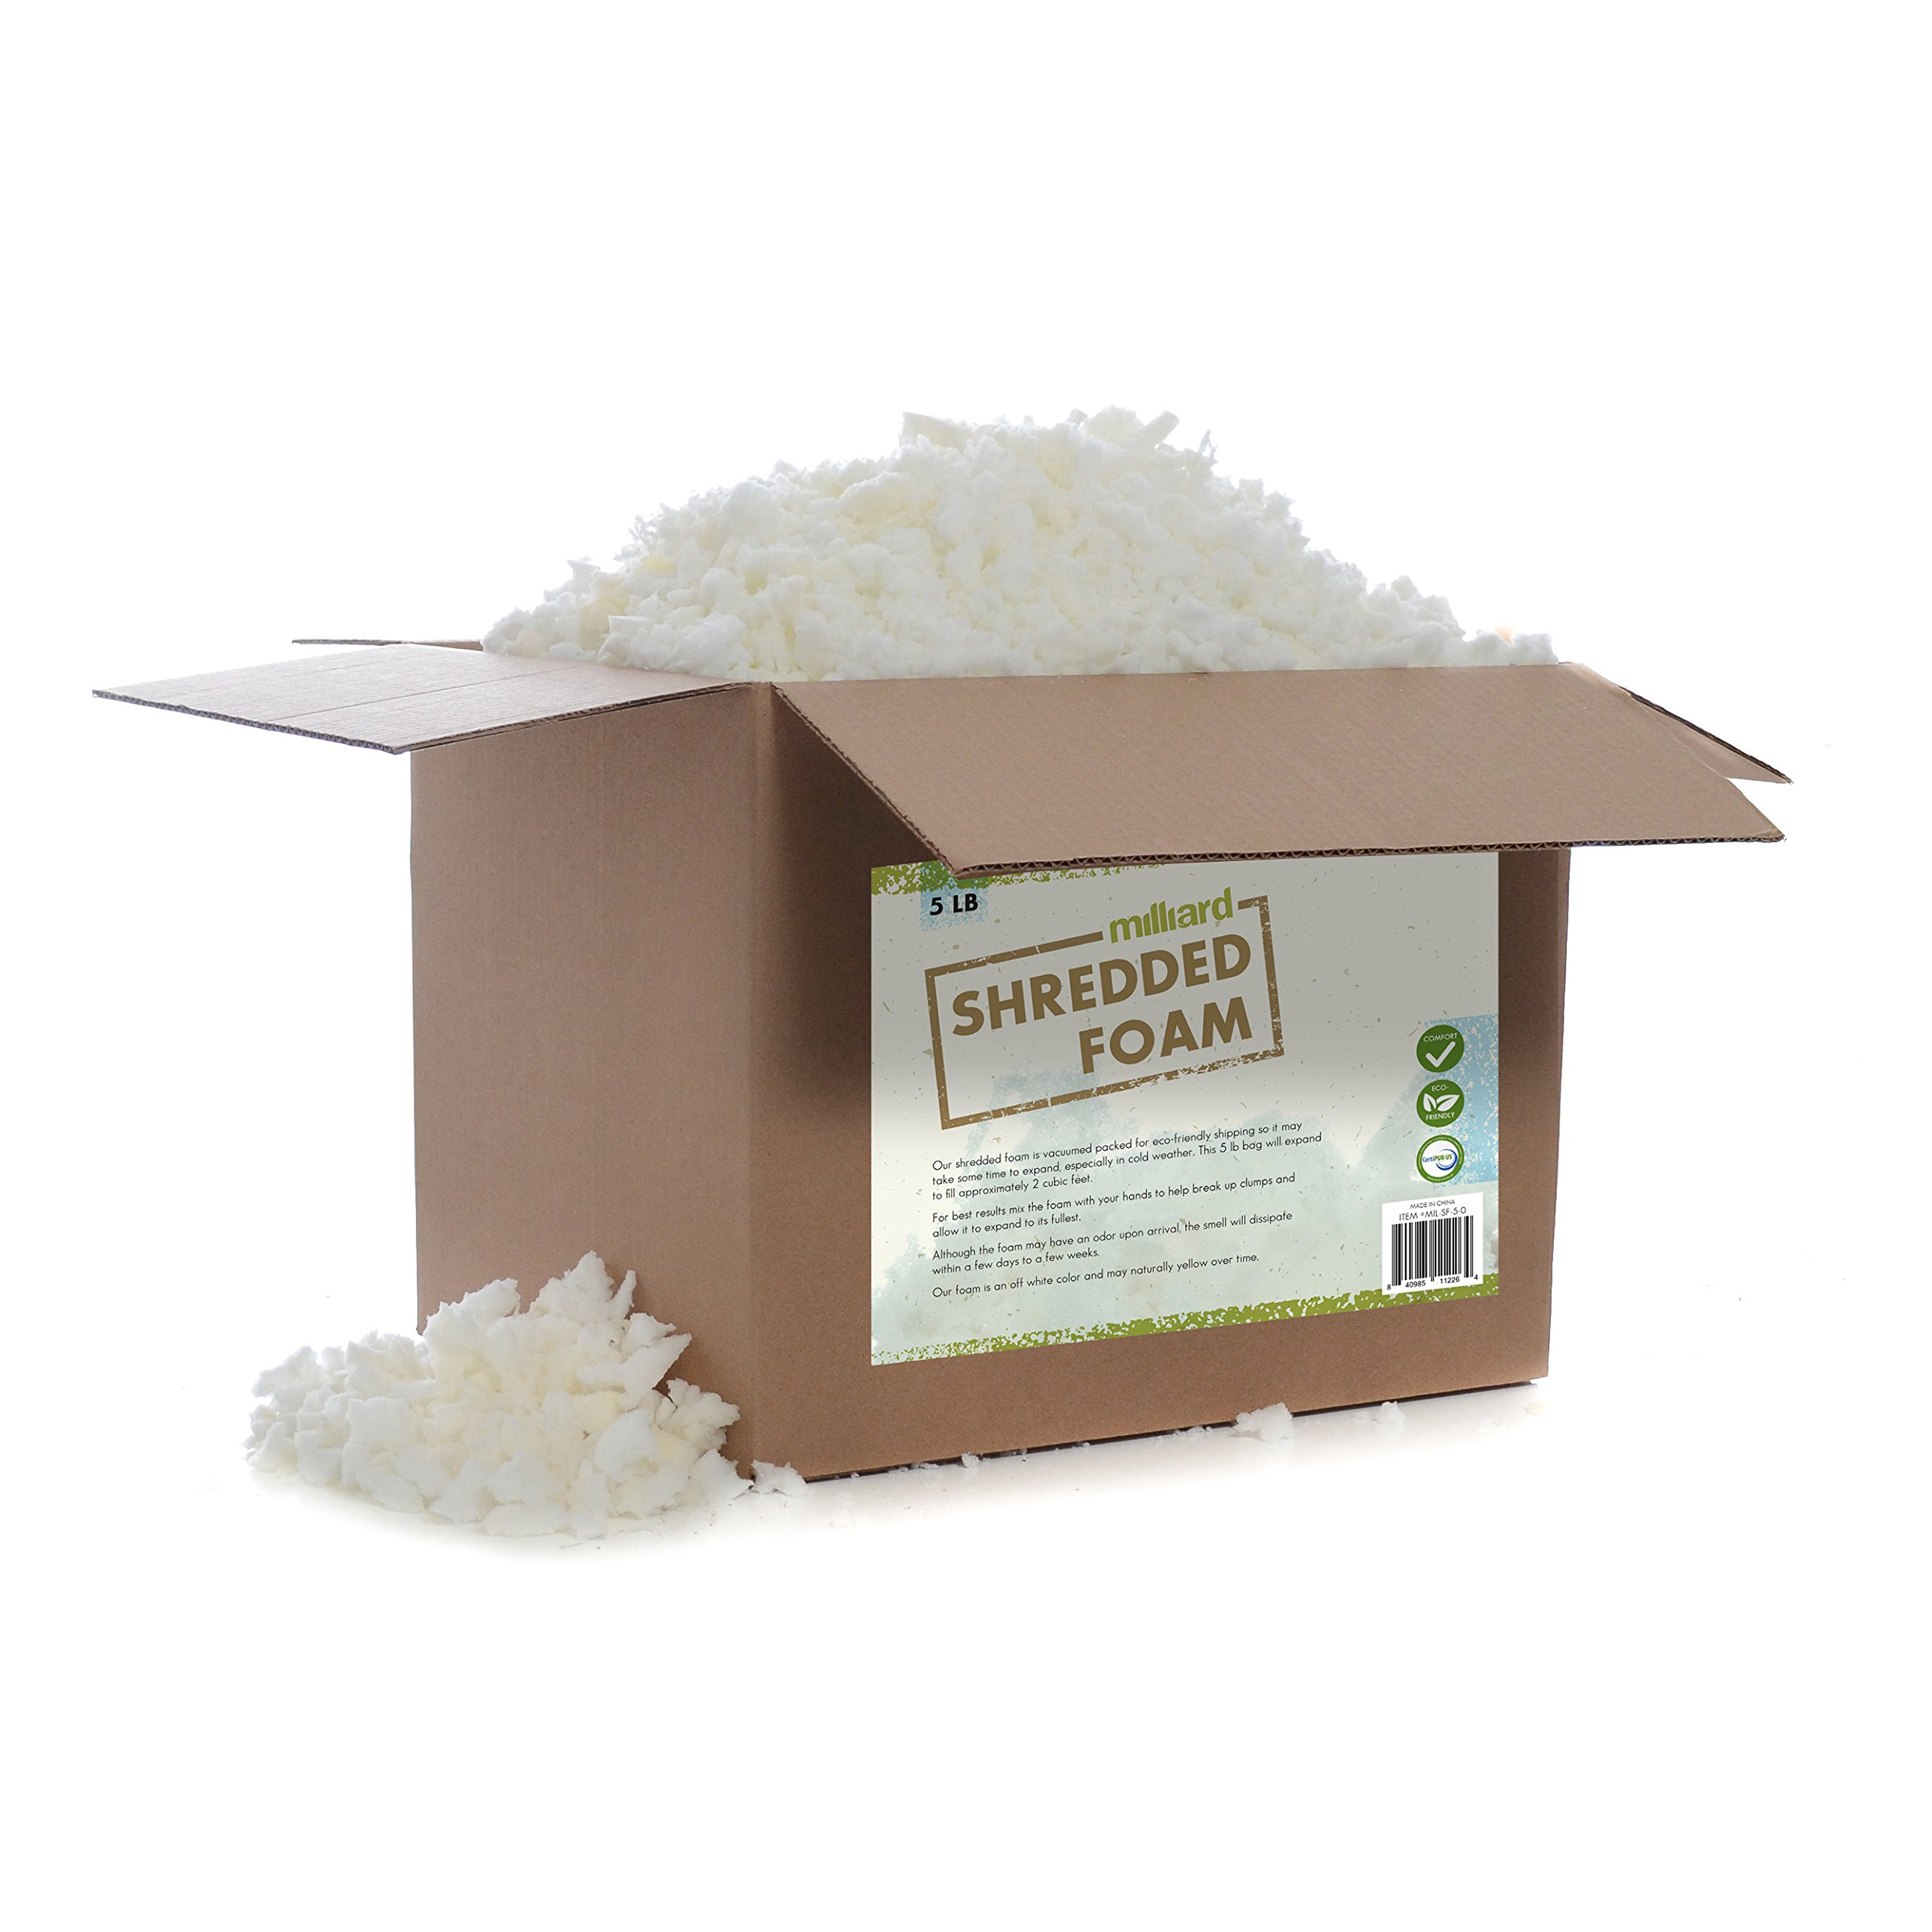 Milliard Shredded Foam: (5 Pounds) Refill for Pillows, Cushions, Chairs, Dog Beds, Crafts, CertiPUR Certified (Not Intended as Bean Bag Filler) by Milliard